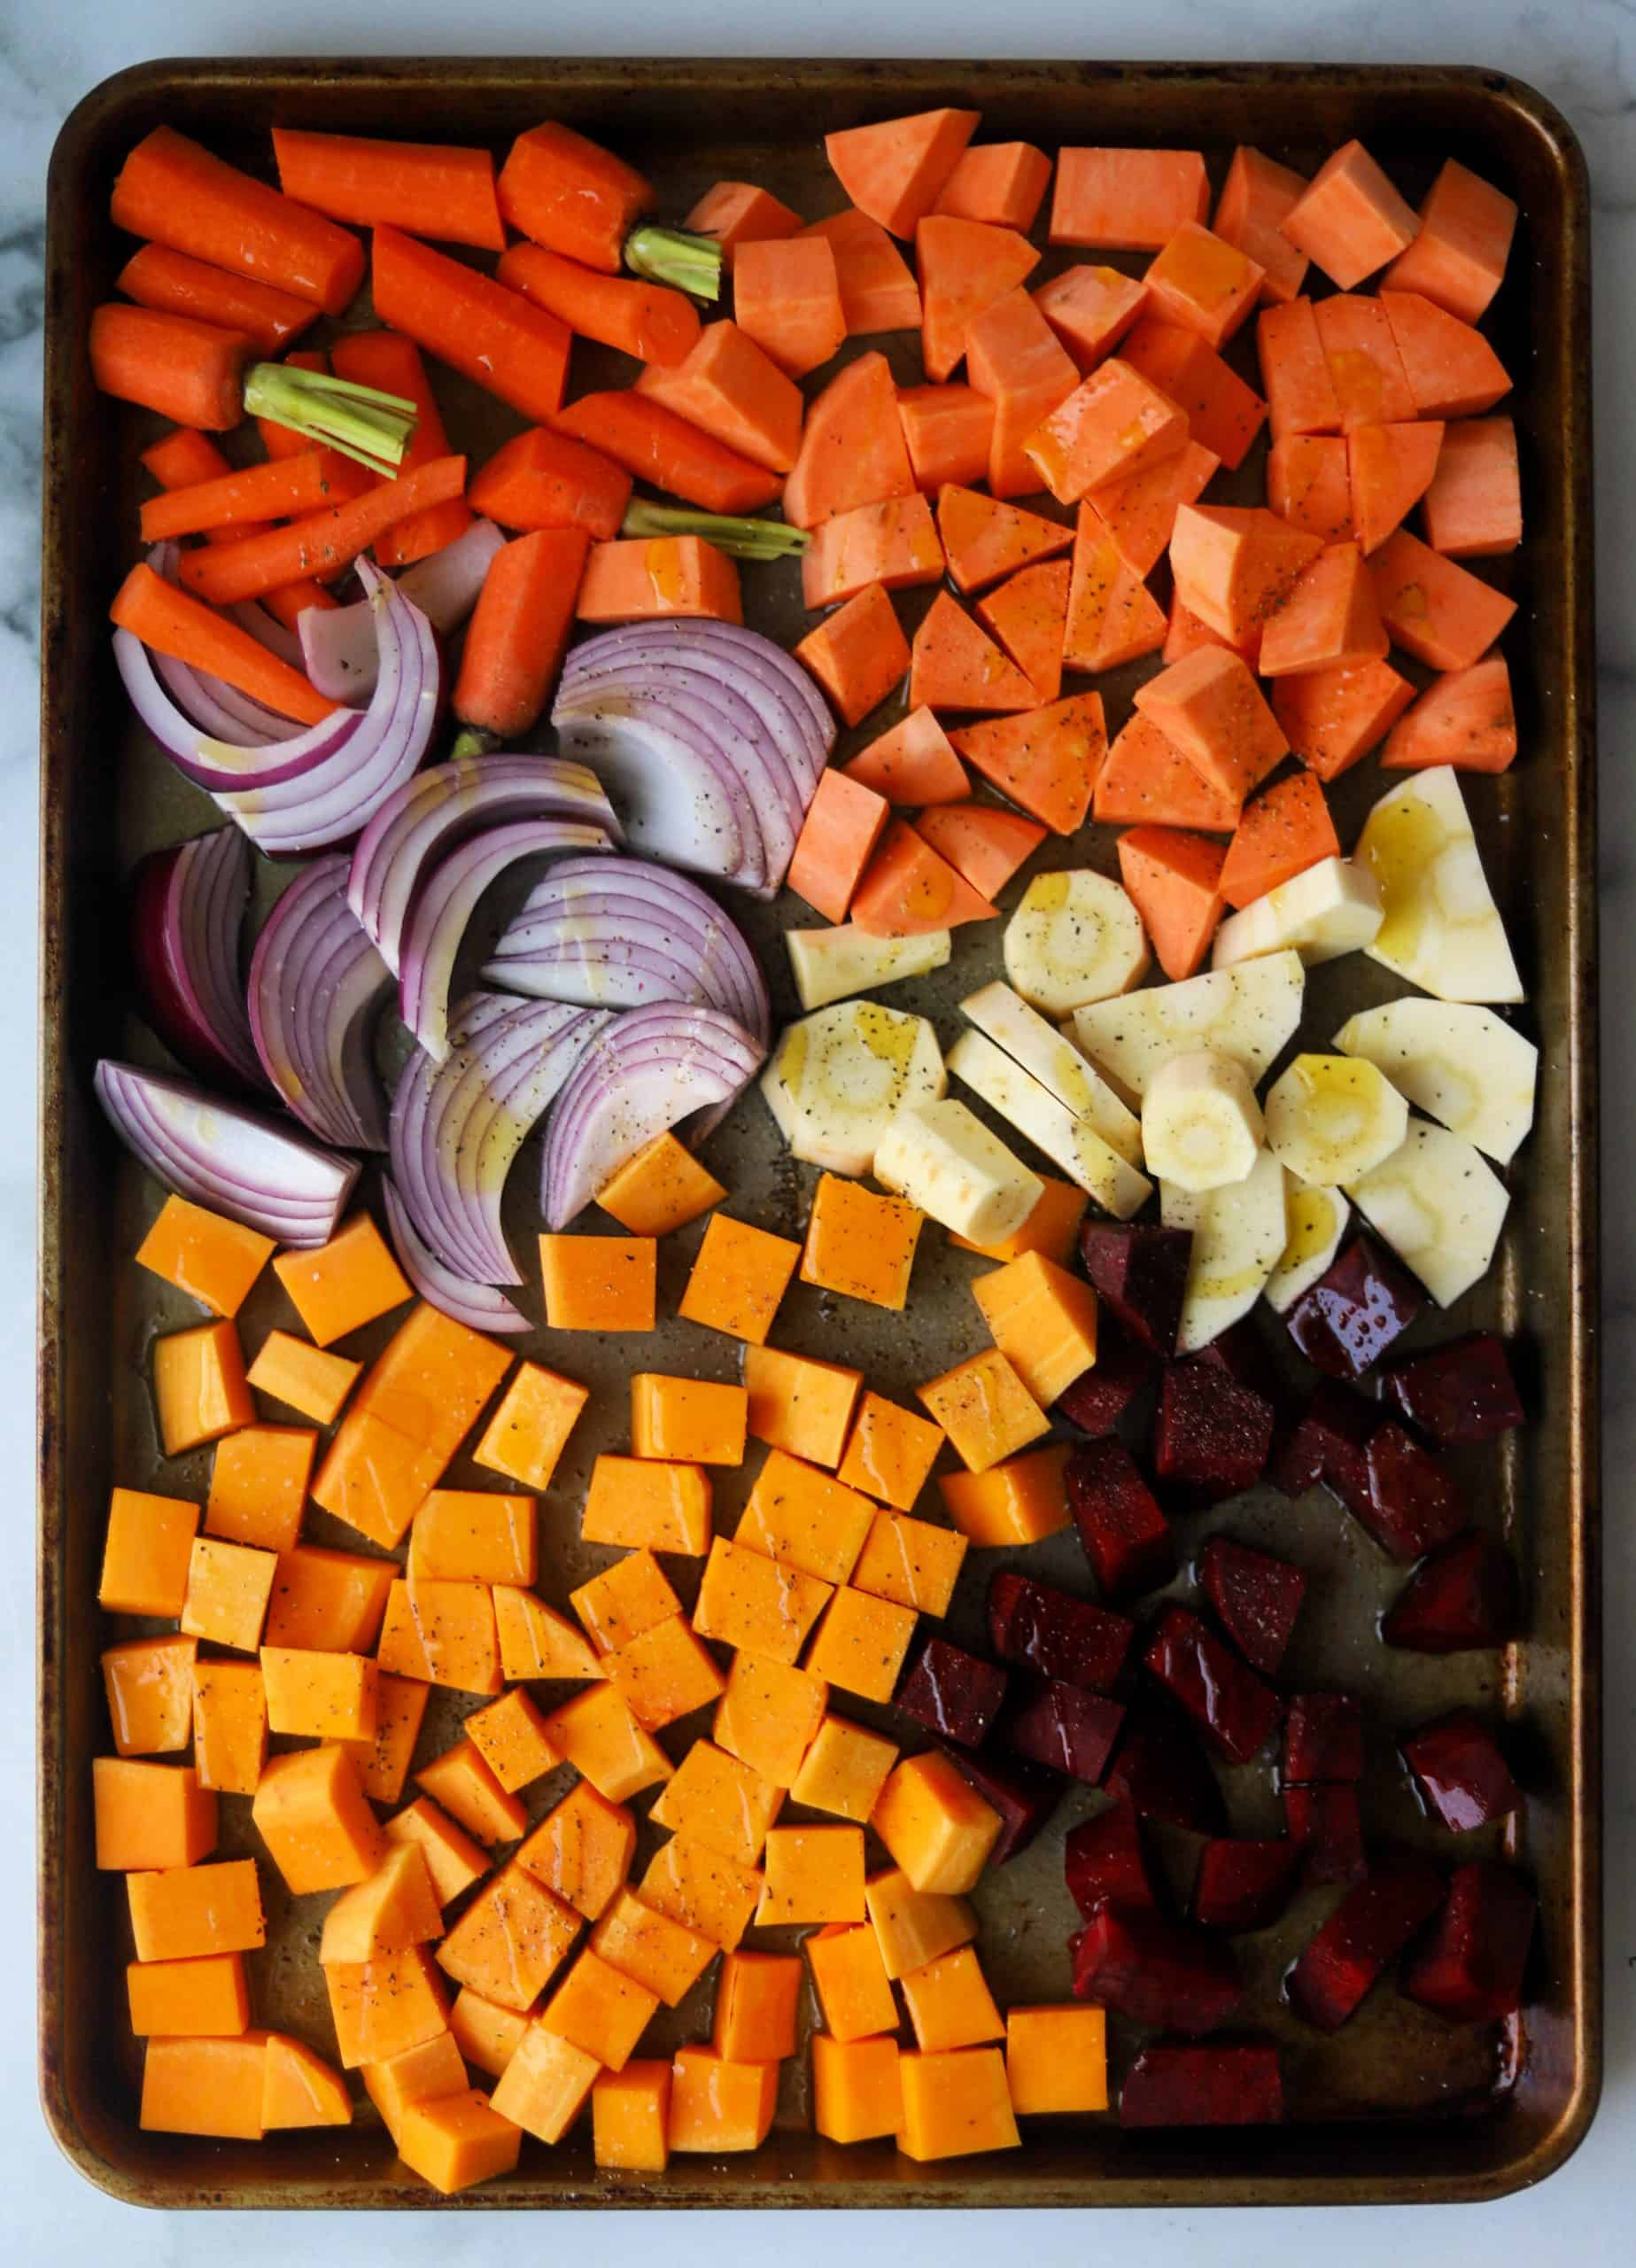 Chopped vegetables drizzled with olive oil and seasoned with salt and pepper on a sheet pan.